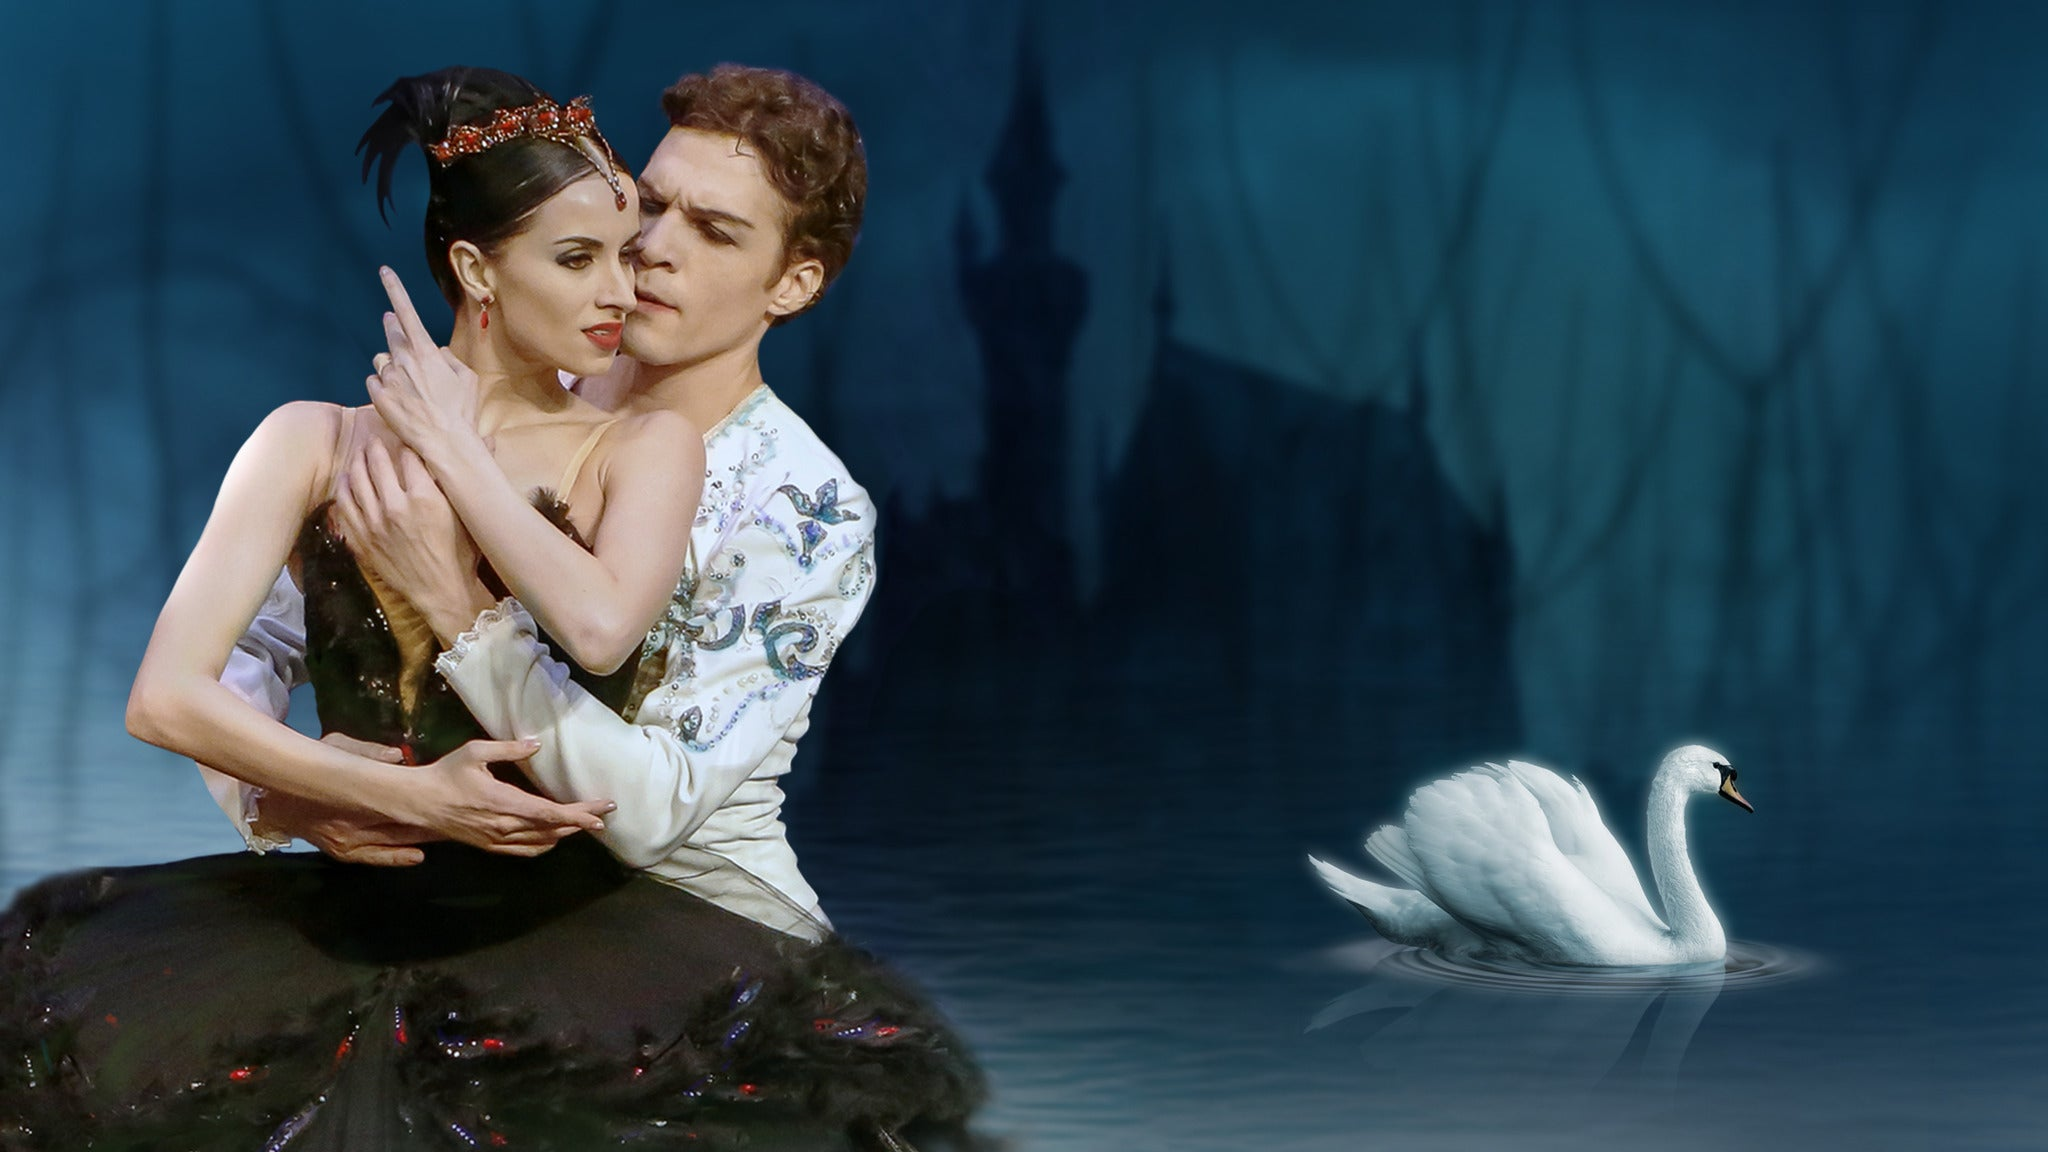 Russian National Ballet w/ Swan Lake at Community Theatre-NJ - Morristown, NJ 07960